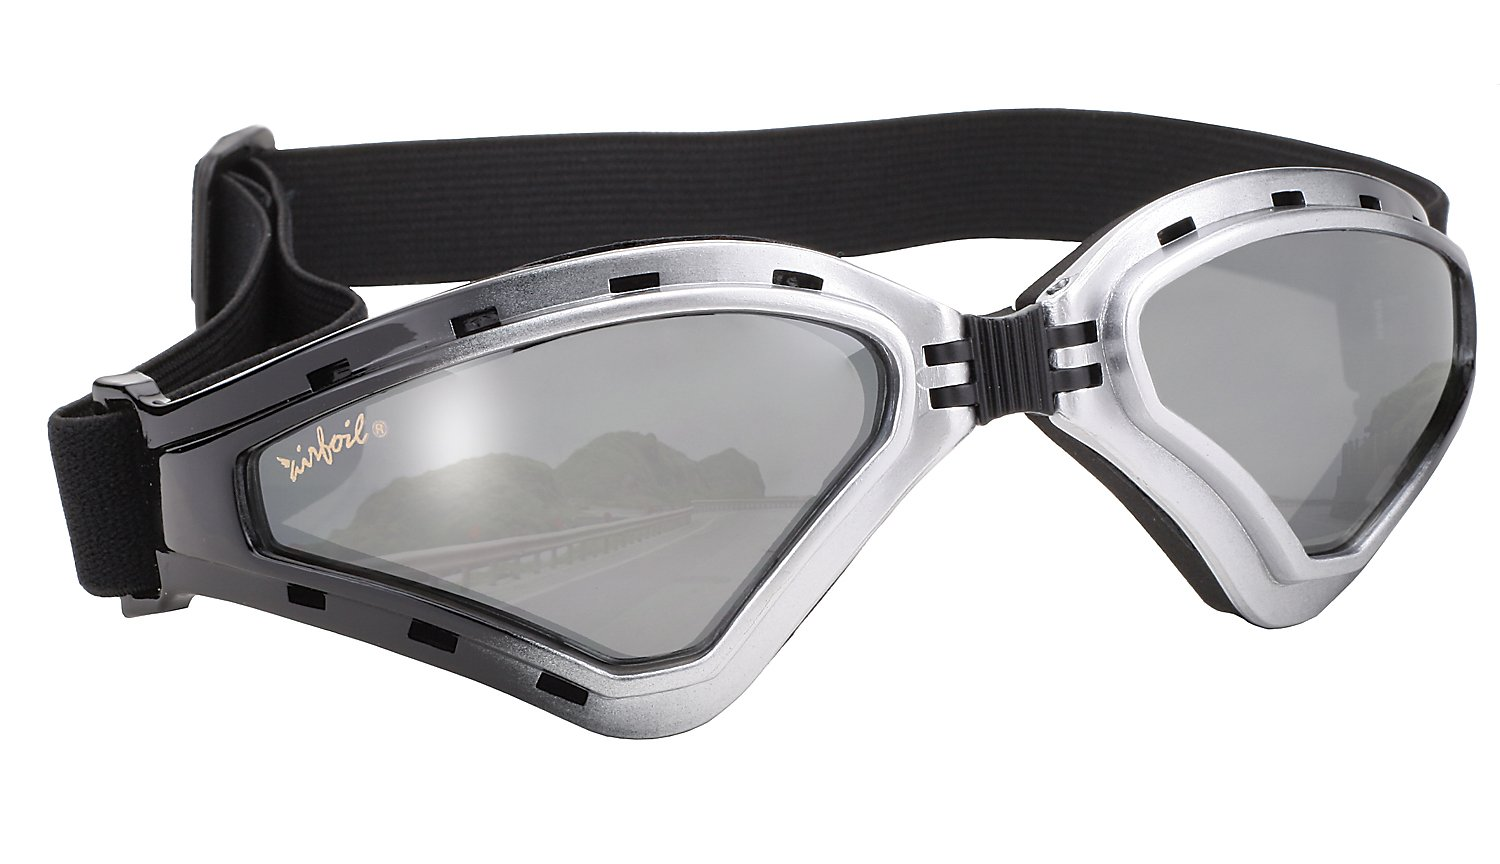 Pacific Coast Airfoil Goggles (Silver to Black Fade Frame/Silver Mirror Lens)